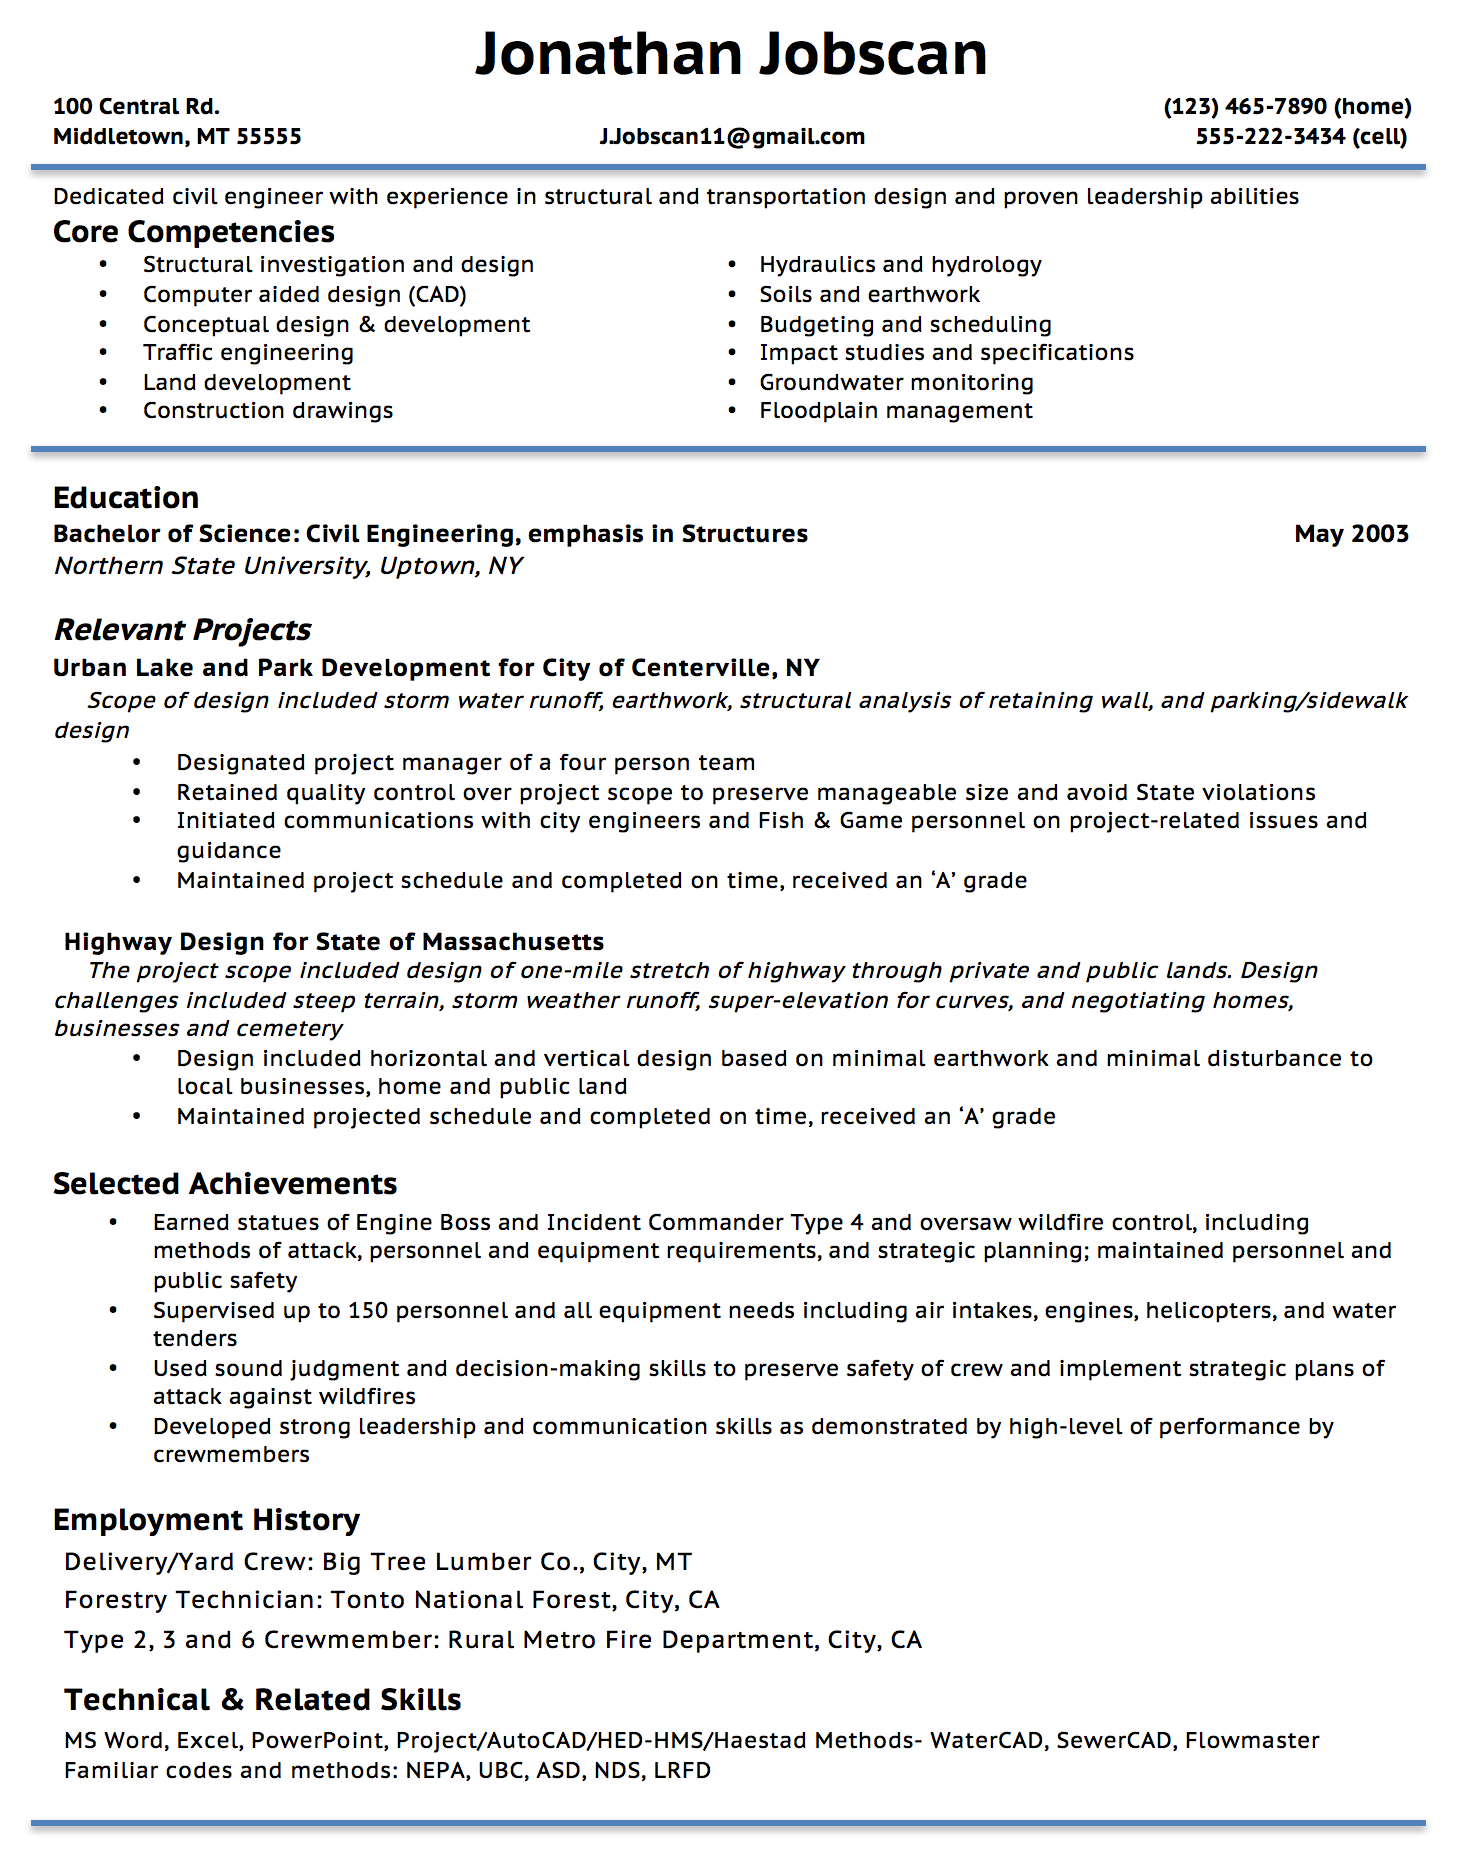 Opposenewapstandardsus  Pretty Resume Writing Guide  Jobscan With Licious Example Of A Functional Resume Format With Astonishing Truck Driver Resumes Also Legal Resume Format In Addition What Should Go On A Resume And Teachers Resume Sample As Well As Resume Templates For Highschool Students Additionally Pct Resume From Jobscanco With Opposenewapstandardsus  Licious Resume Writing Guide  Jobscan With Astonishing Example Of A Functional Resume Format And Pretty Truck Driver Resumes Also Legal Resume Format In Addition What Should Go On A Resume From Jobscanco